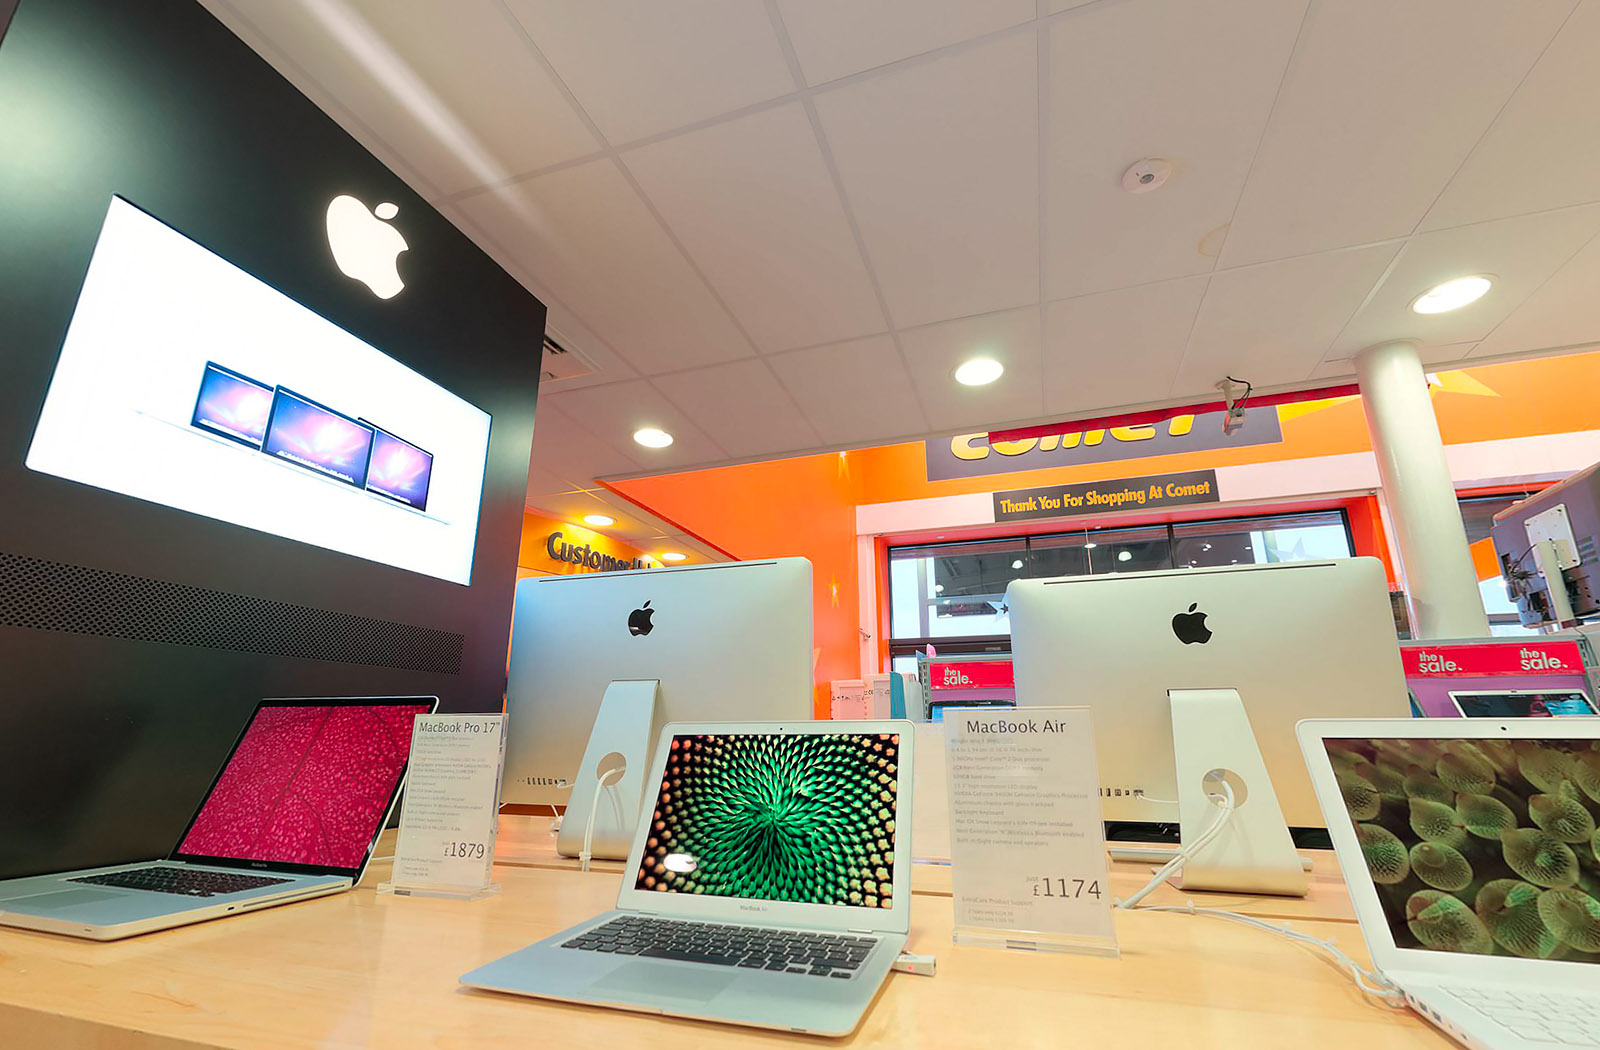 Apple Store Virtual Tour at Comet